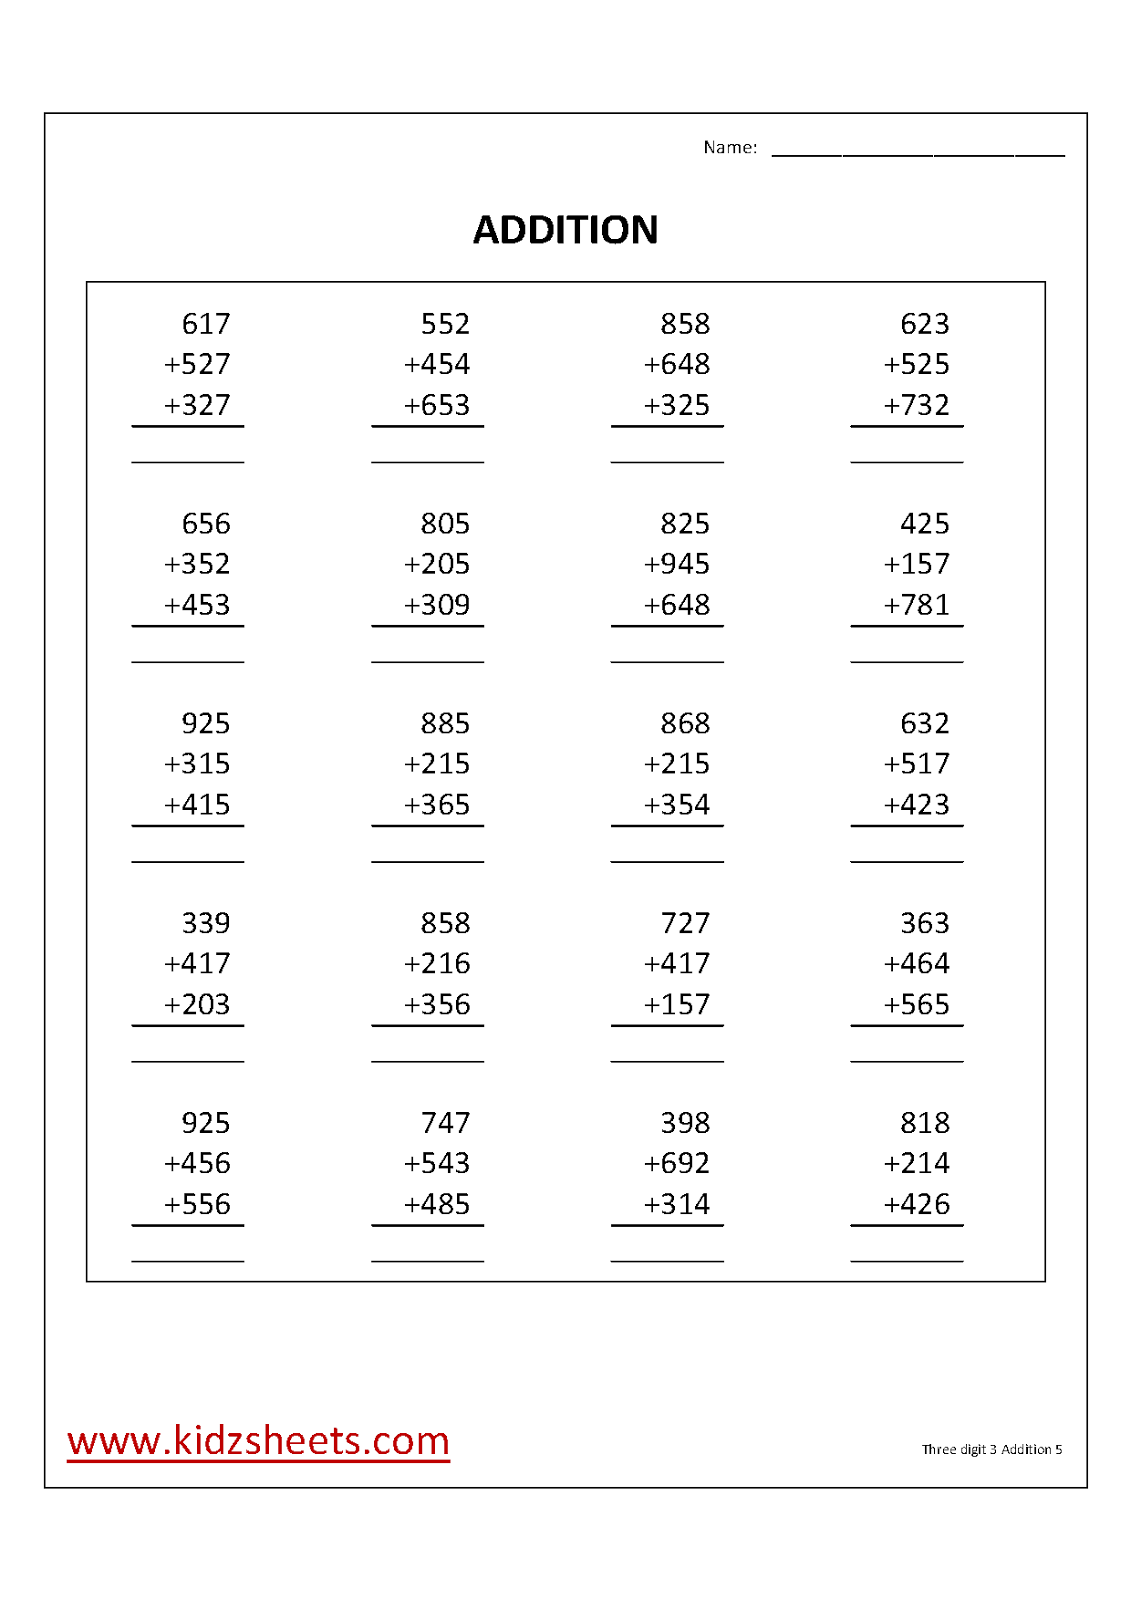 hight resolution of Kidz Worksheets: Third Grade Three digit 3 Number Addition Worksheet5